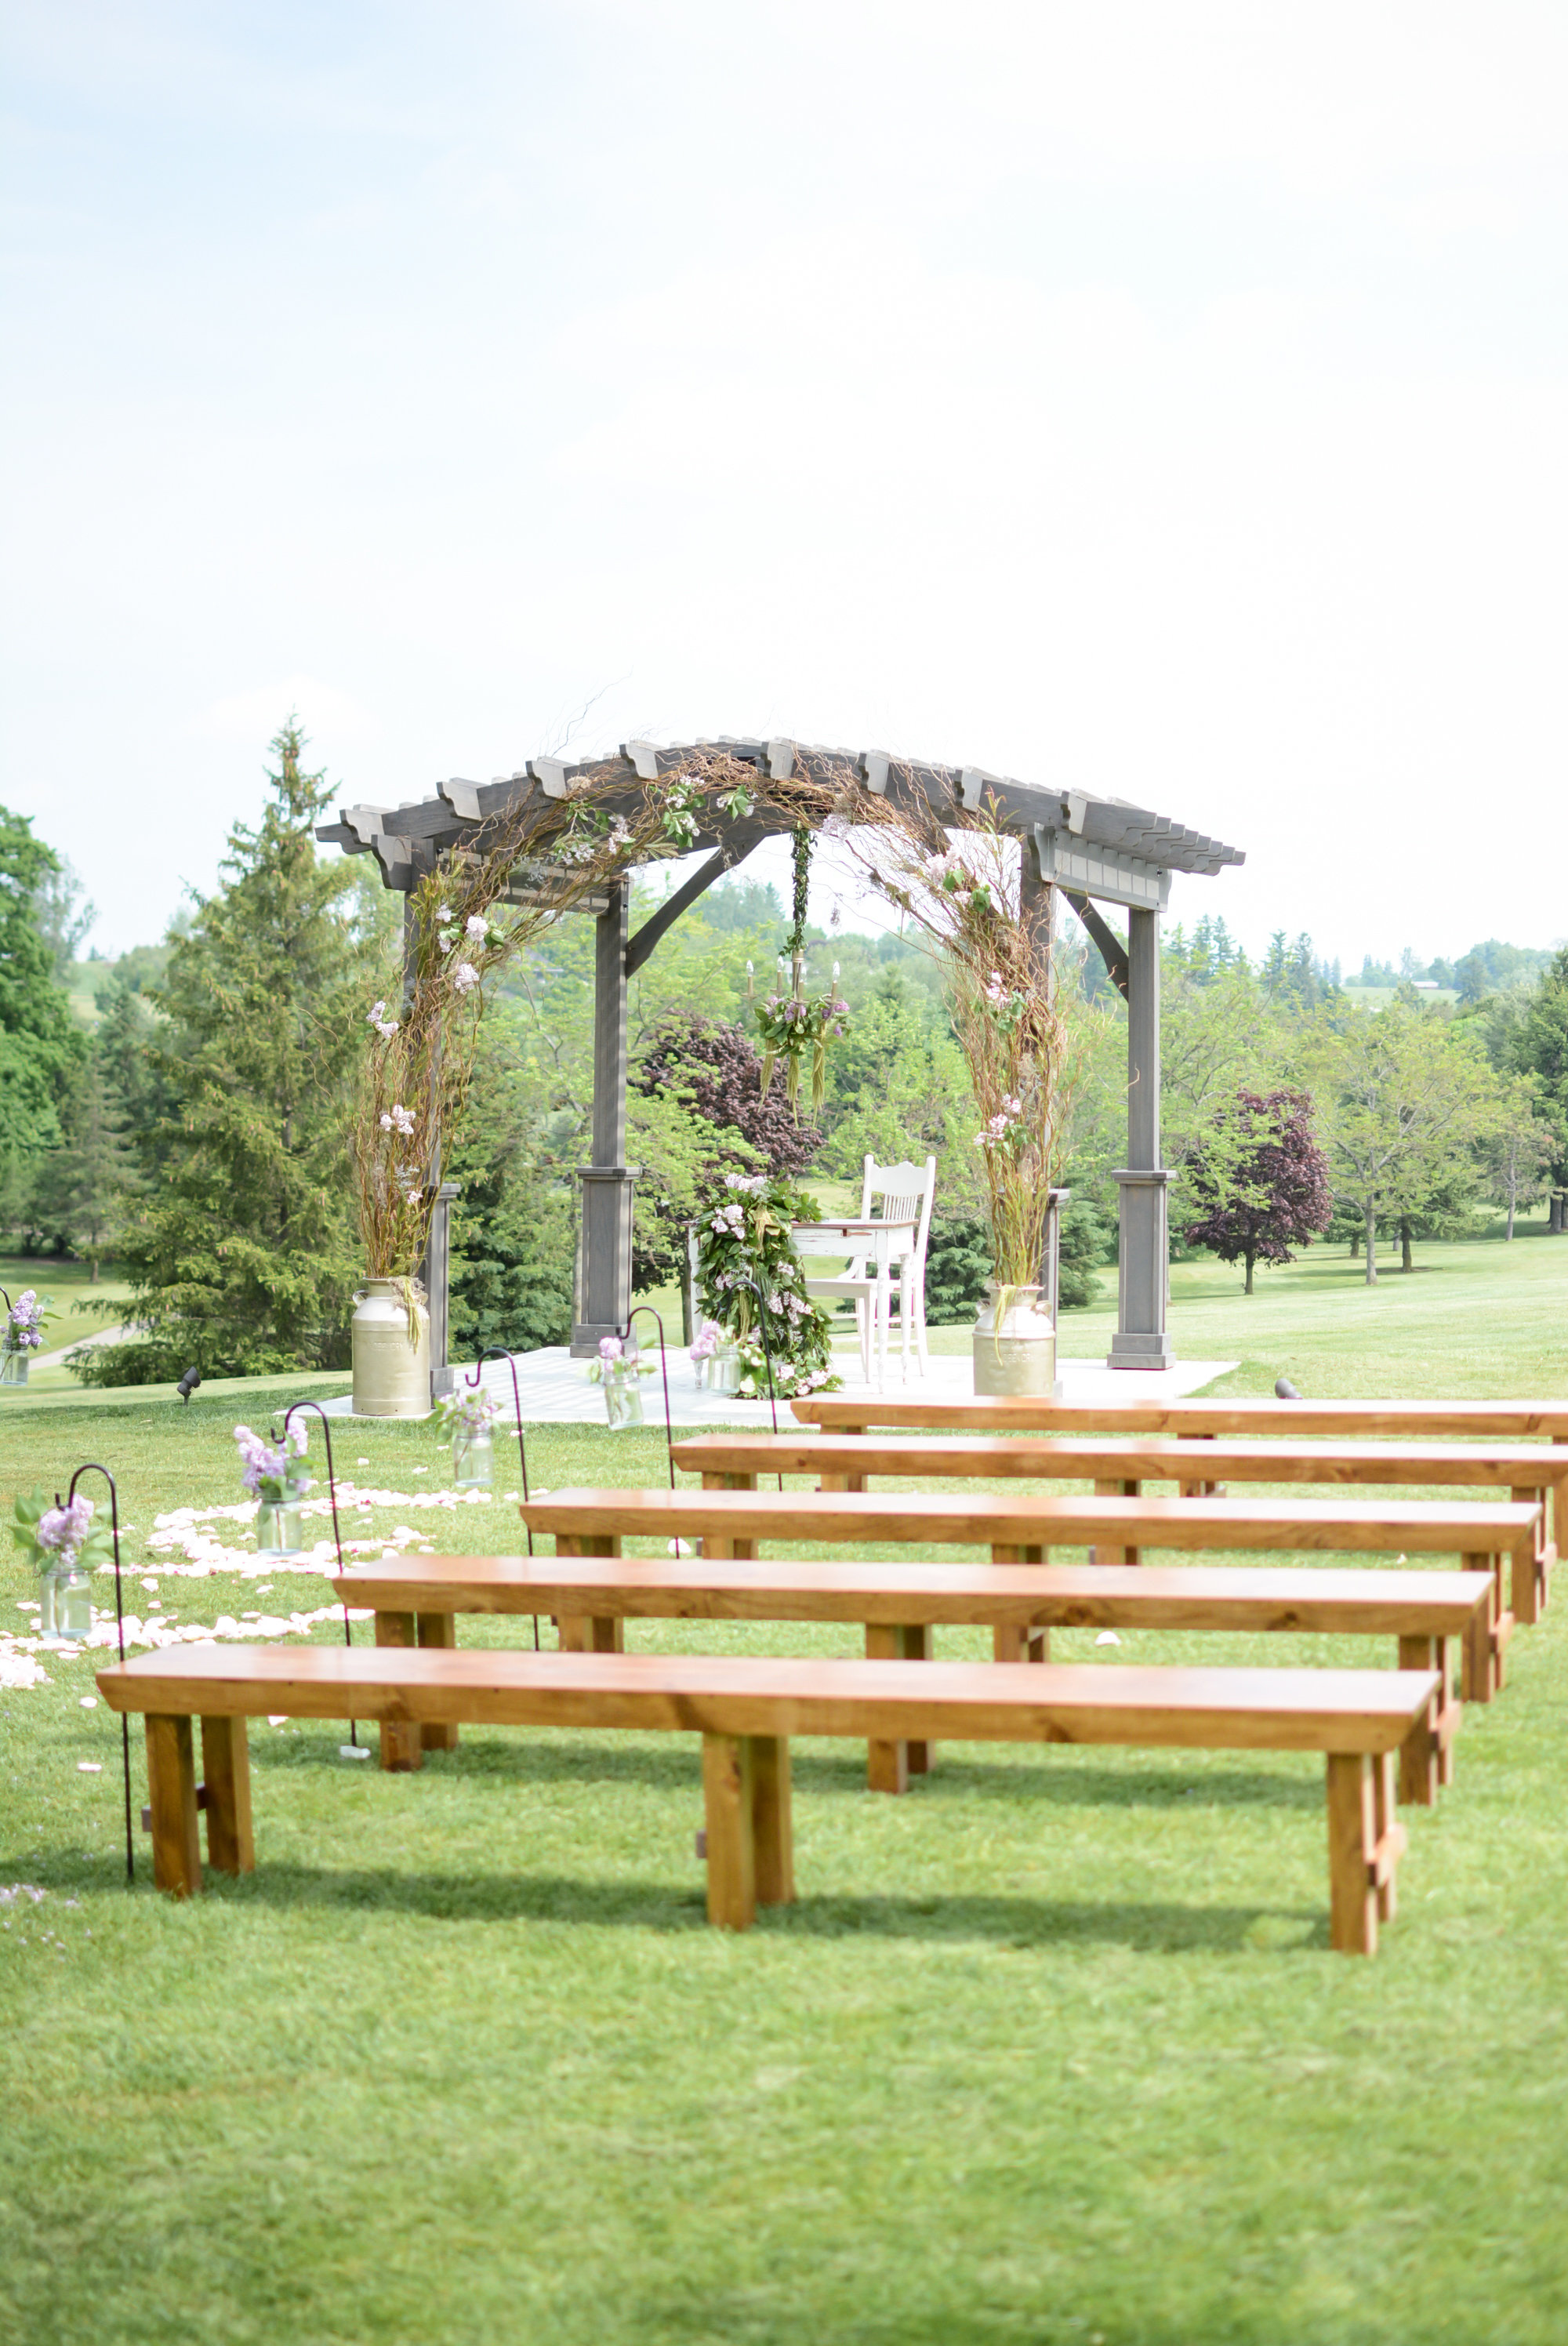 Harvest benches lend an earth-grounded and rustic appeal to the ceremony setting at St. Marys. Photography:    Nina Polidoro   . Decor & Styling:    Above & Beyond Event Design   . Floral Design:    Lyric Flowers   .